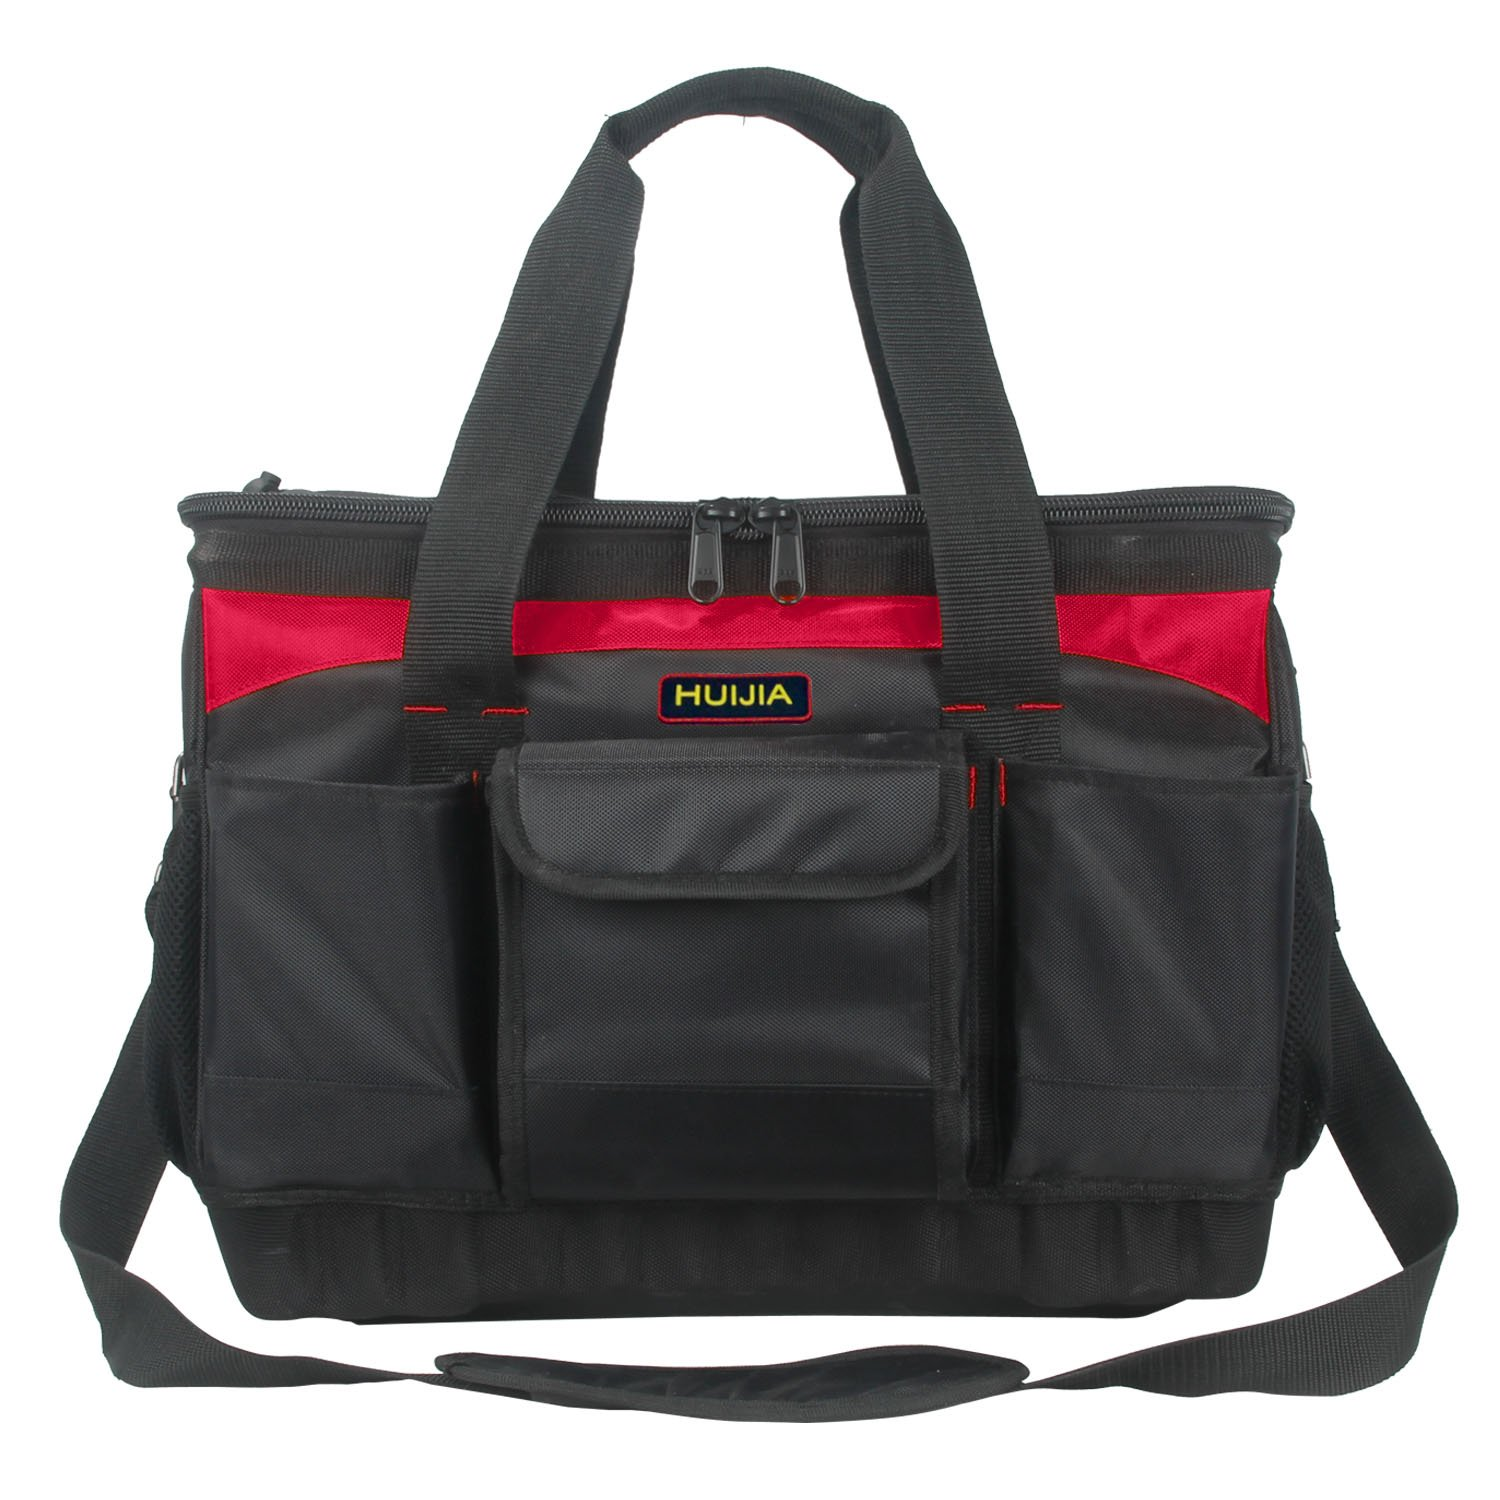 90% off 15 Inch Heavy Duty Professional Tool Bag, Large Capacity